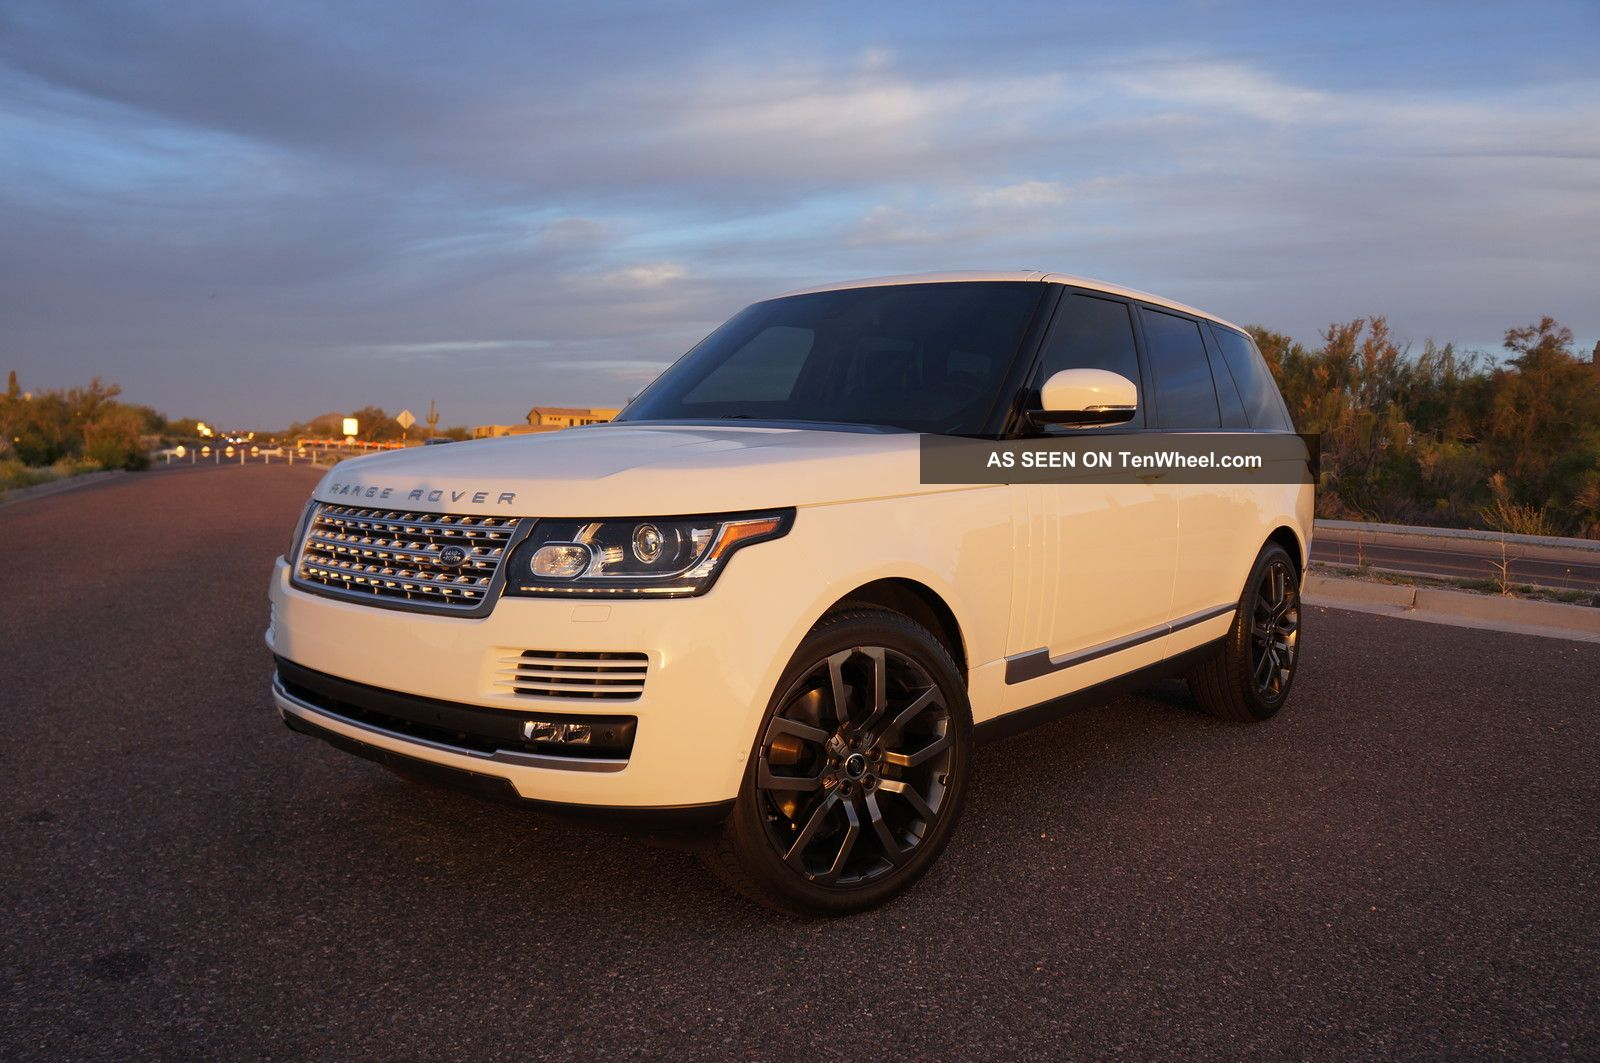 2013 range rover hse white over black 22 meridian pano roof. Black Bedroom Furniture Sets. Home Design Ideas